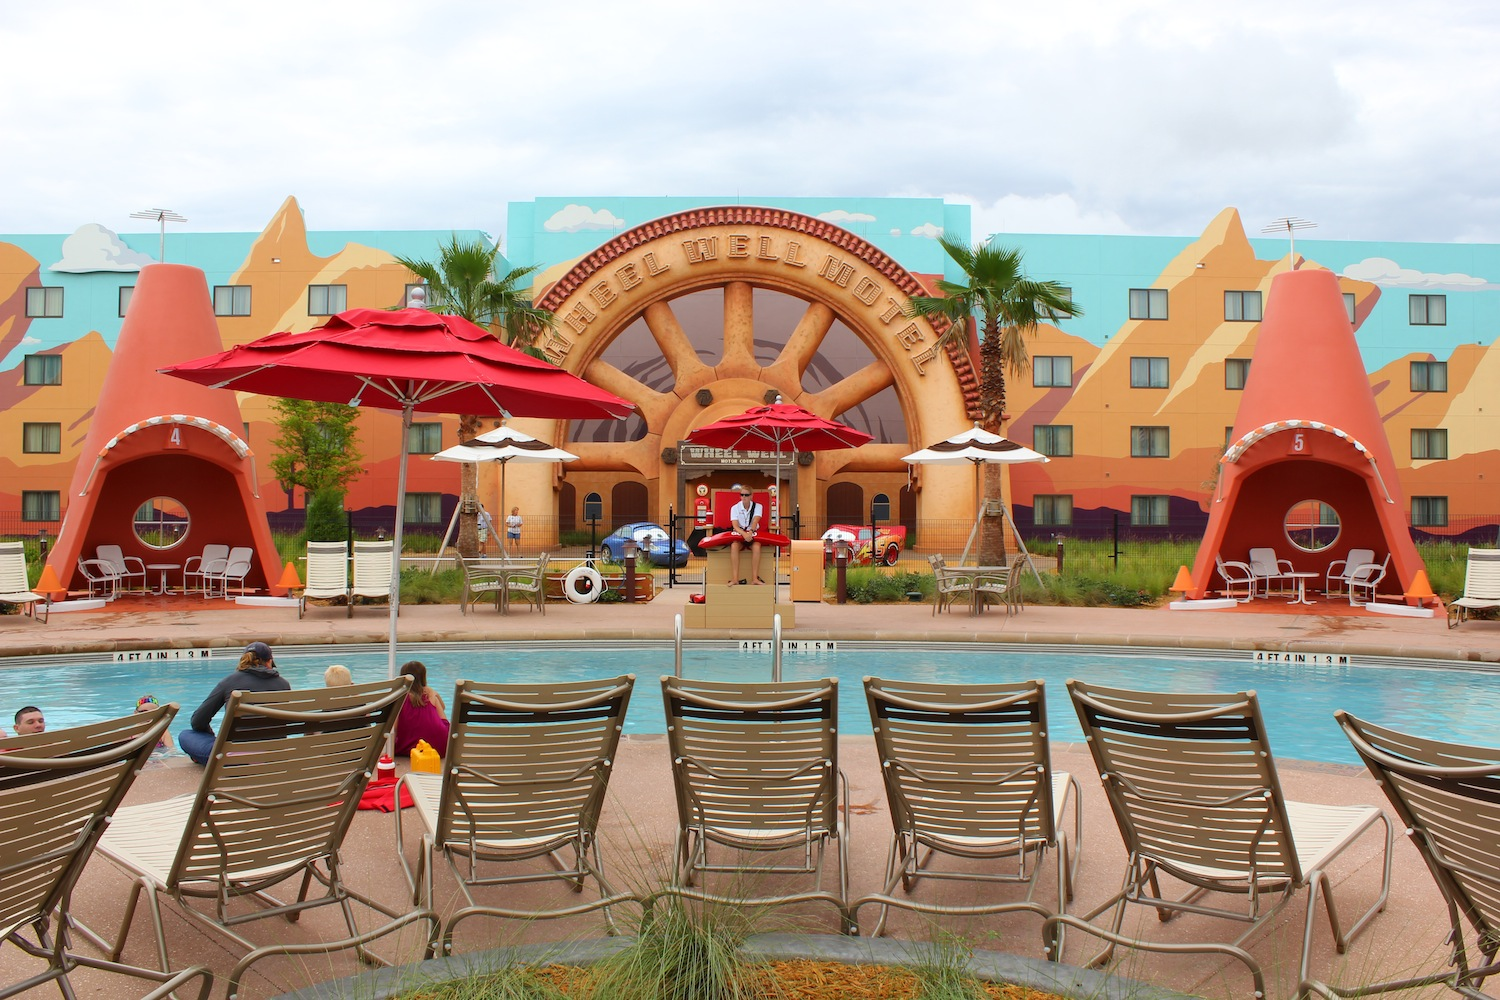 Hotel Disney S Art Of Animation Resort Em Orlando Dicas